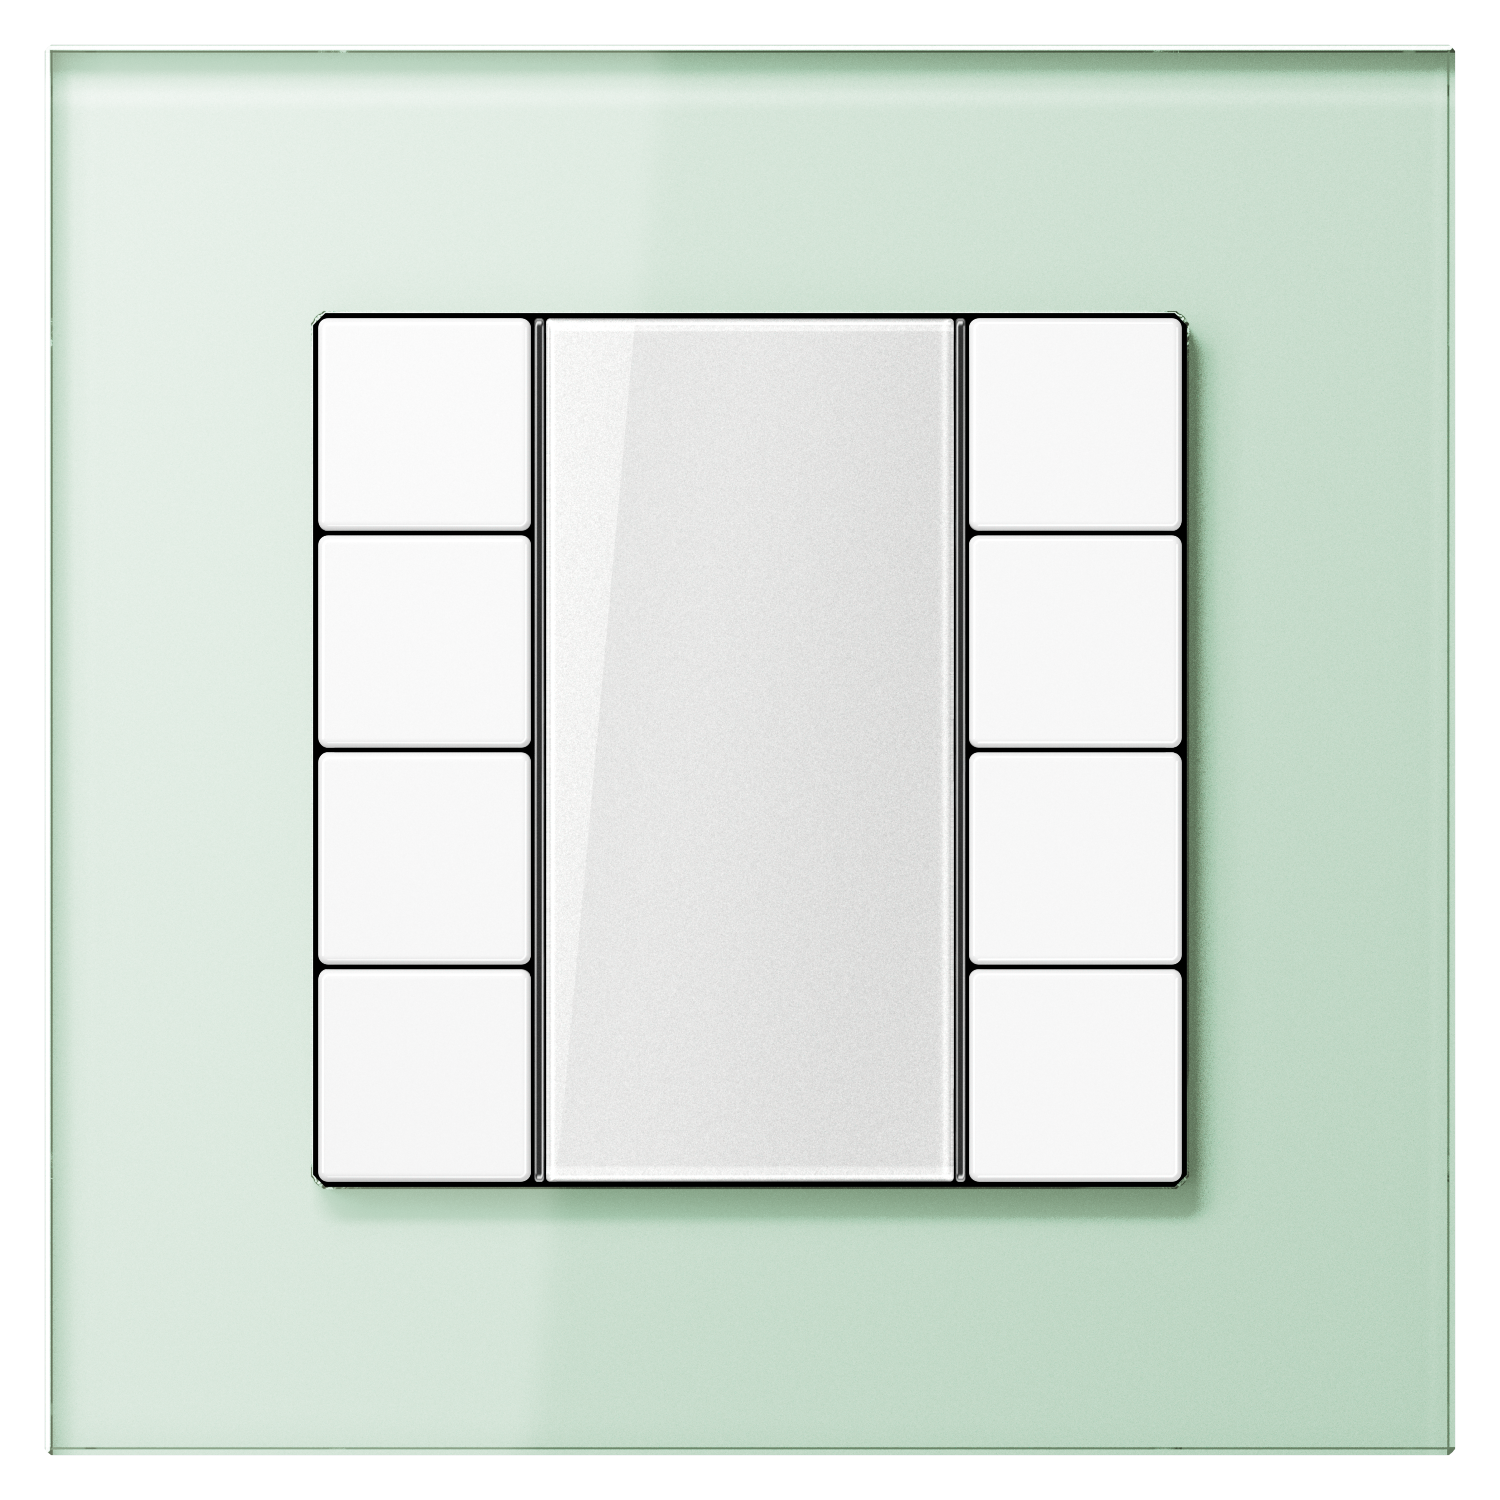 JUNG_LS-plus_GL_soft-white_white_F50_4button